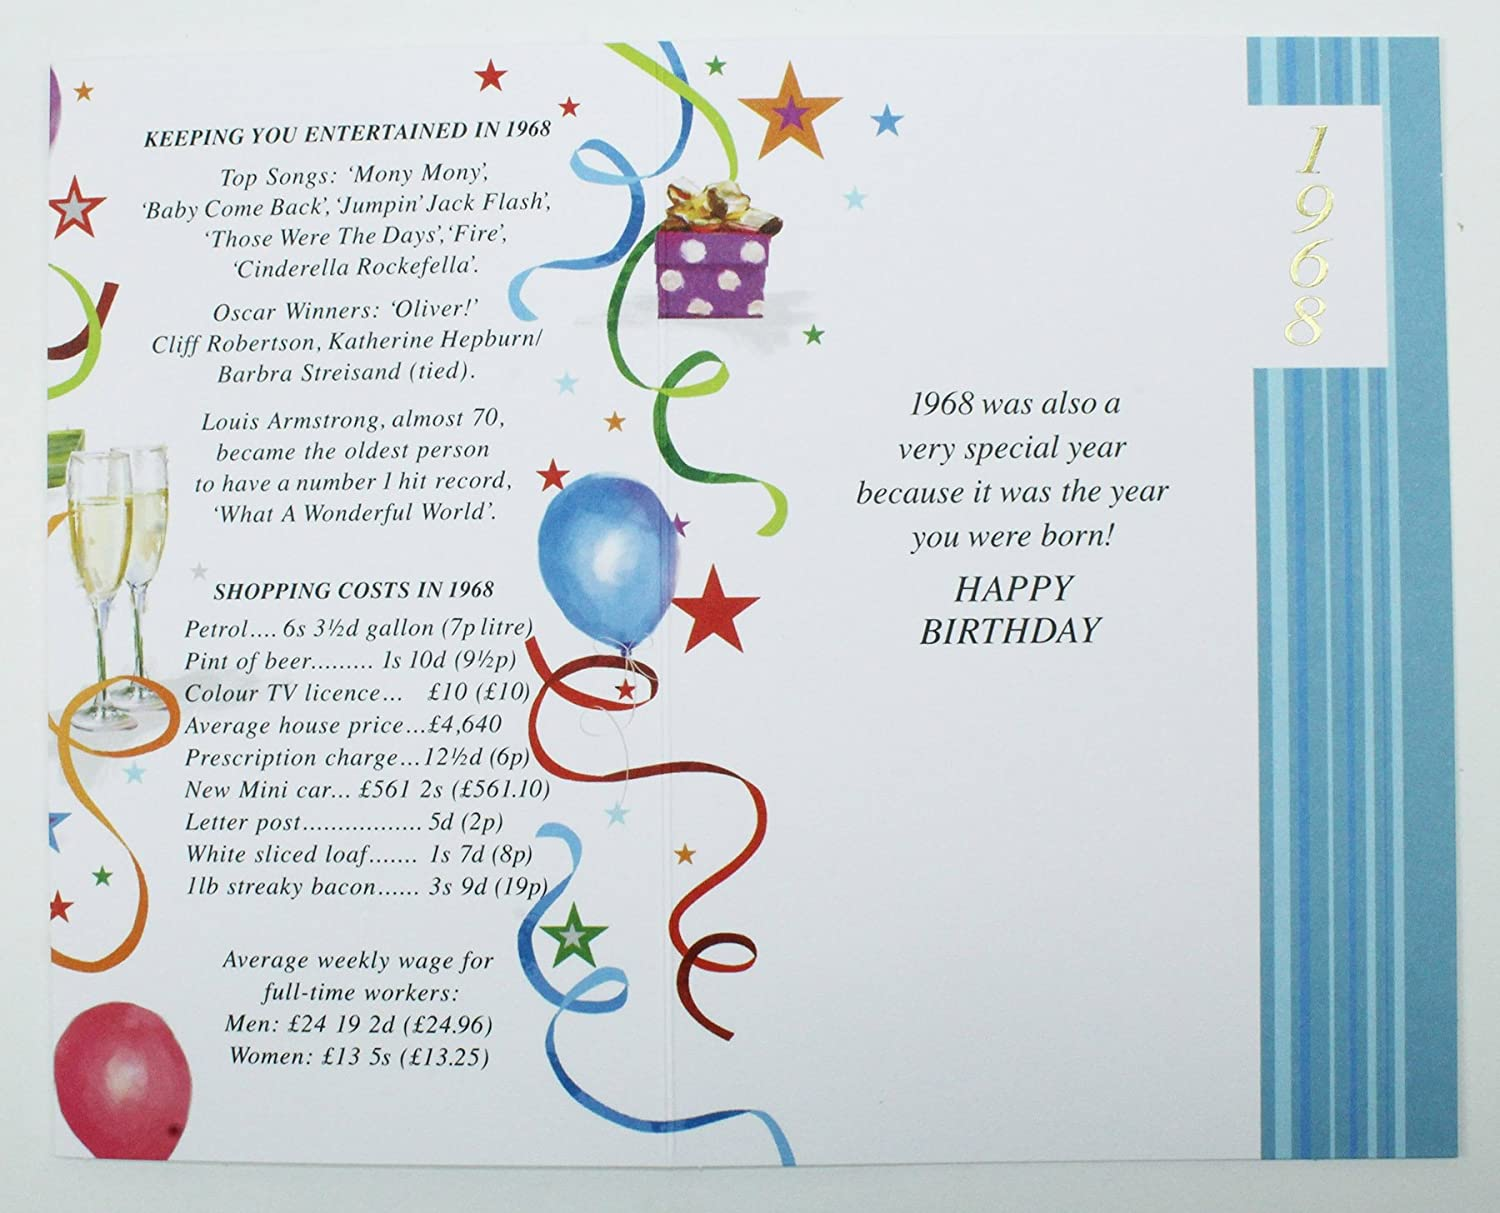 50 Today 1968 Special Year Born Happy Birthday Card Facts Quality